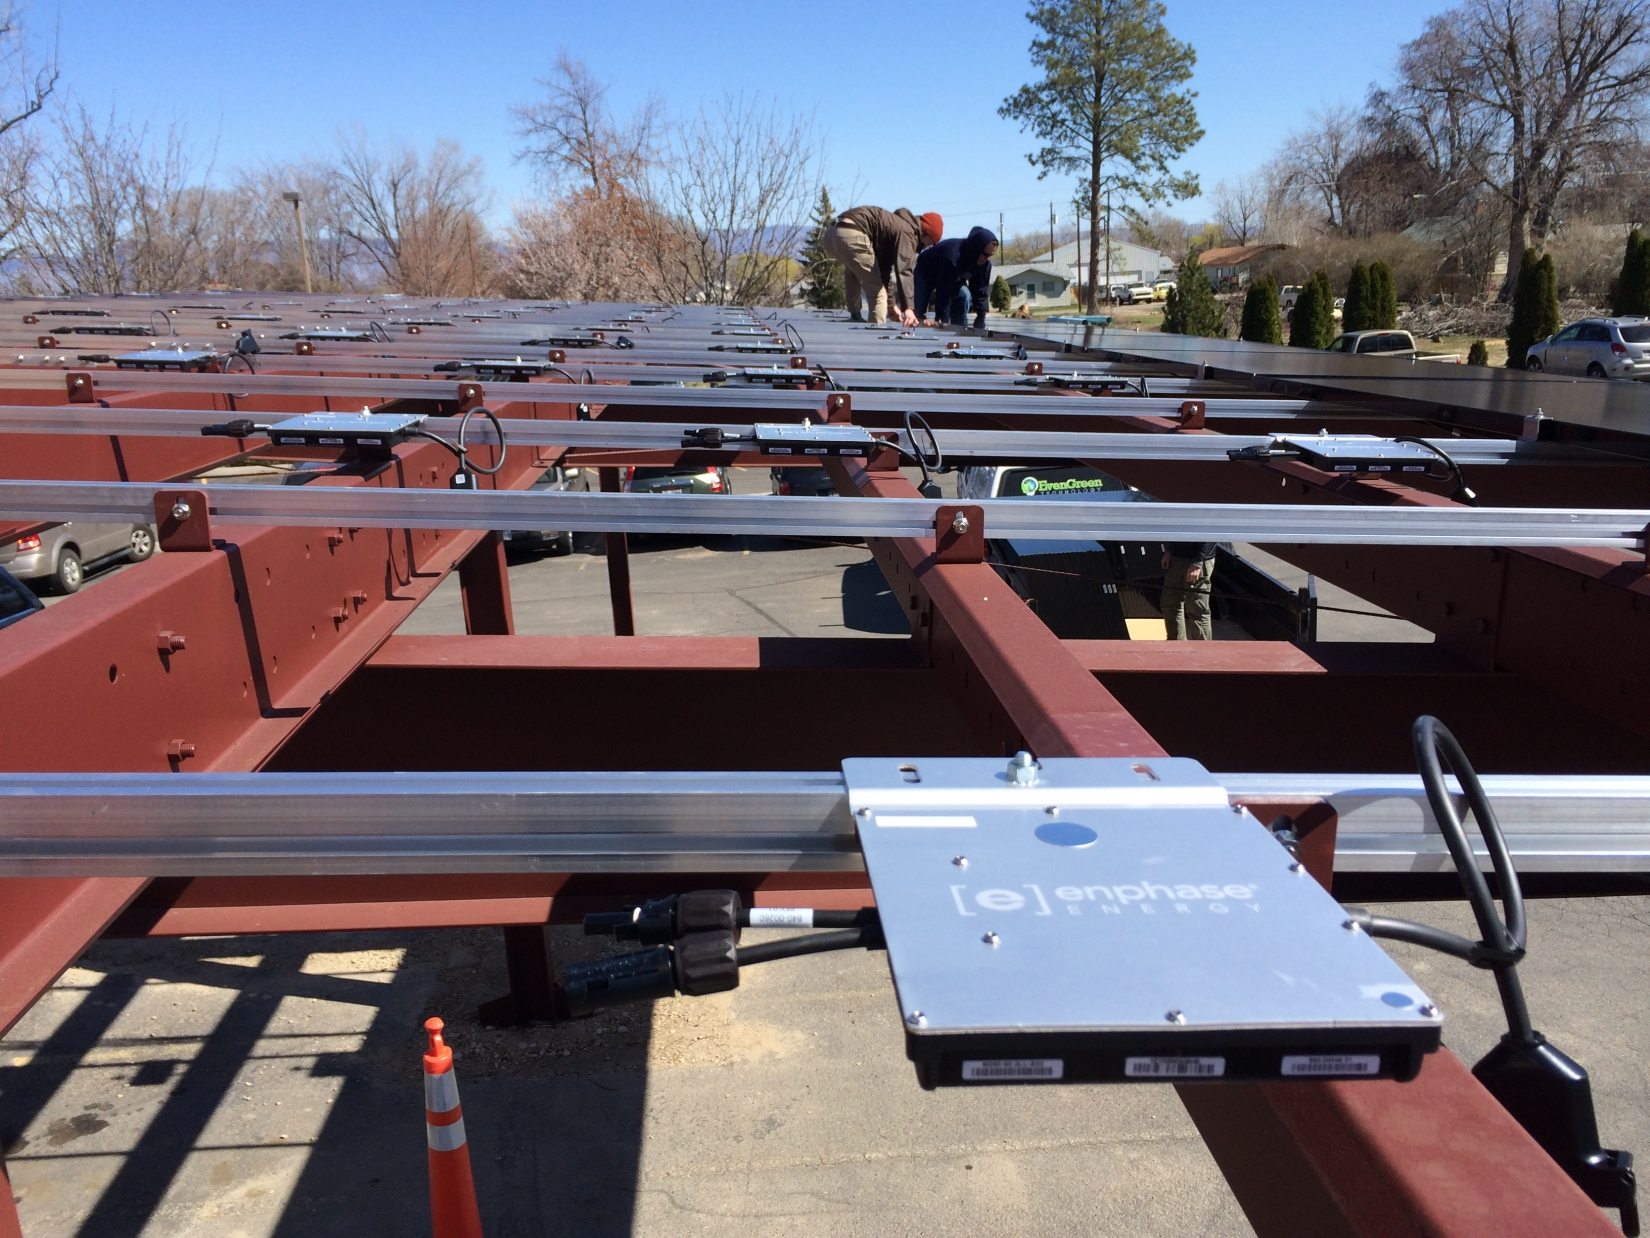 Solar carport idaho pascal steel buildings for Rv covered parking structures